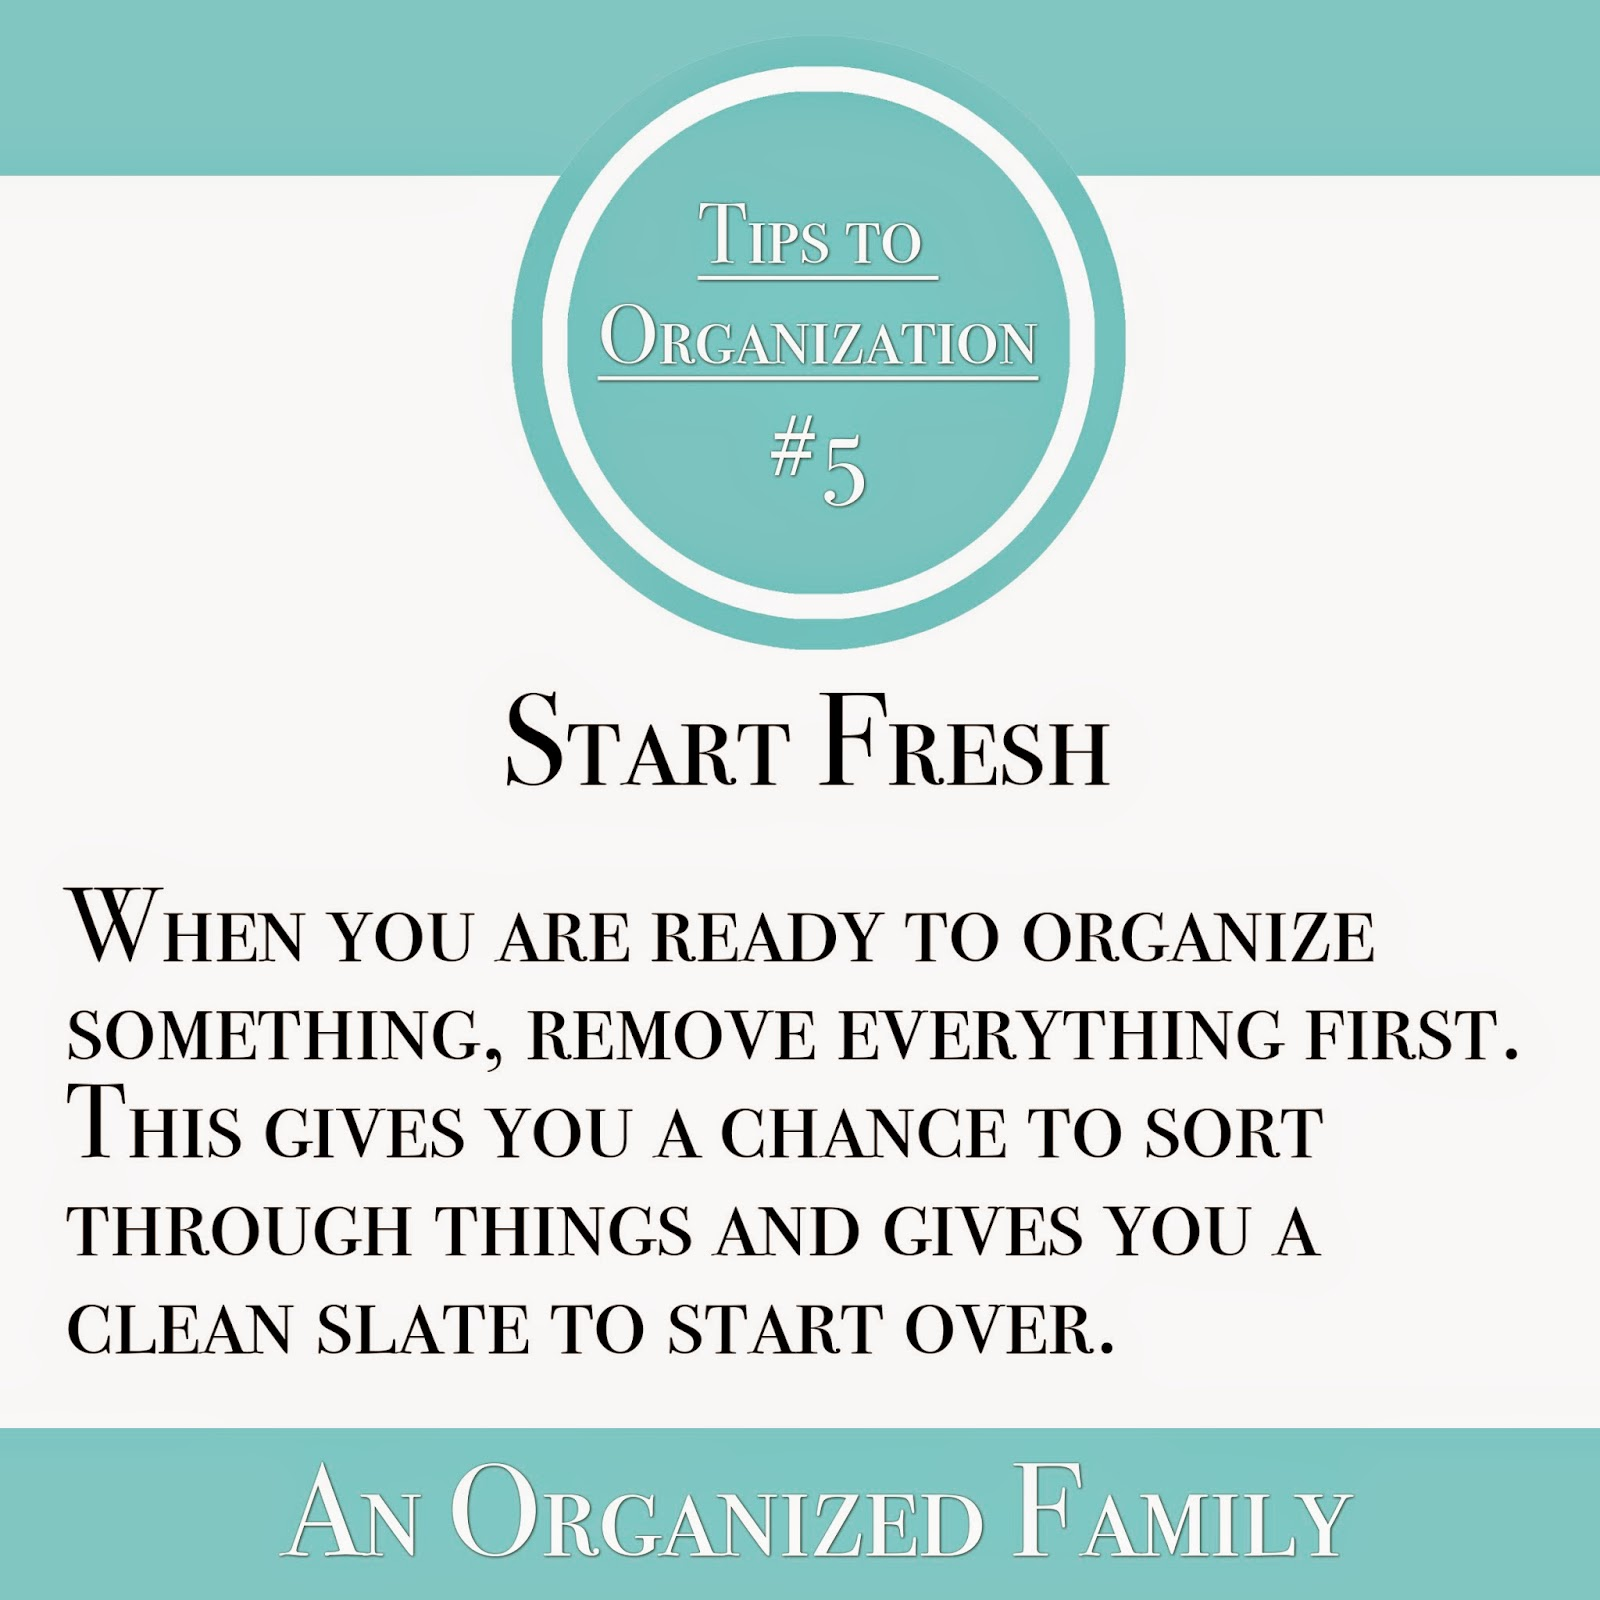 An Organized Family - tips to organization - start fresh - clean slate - blank